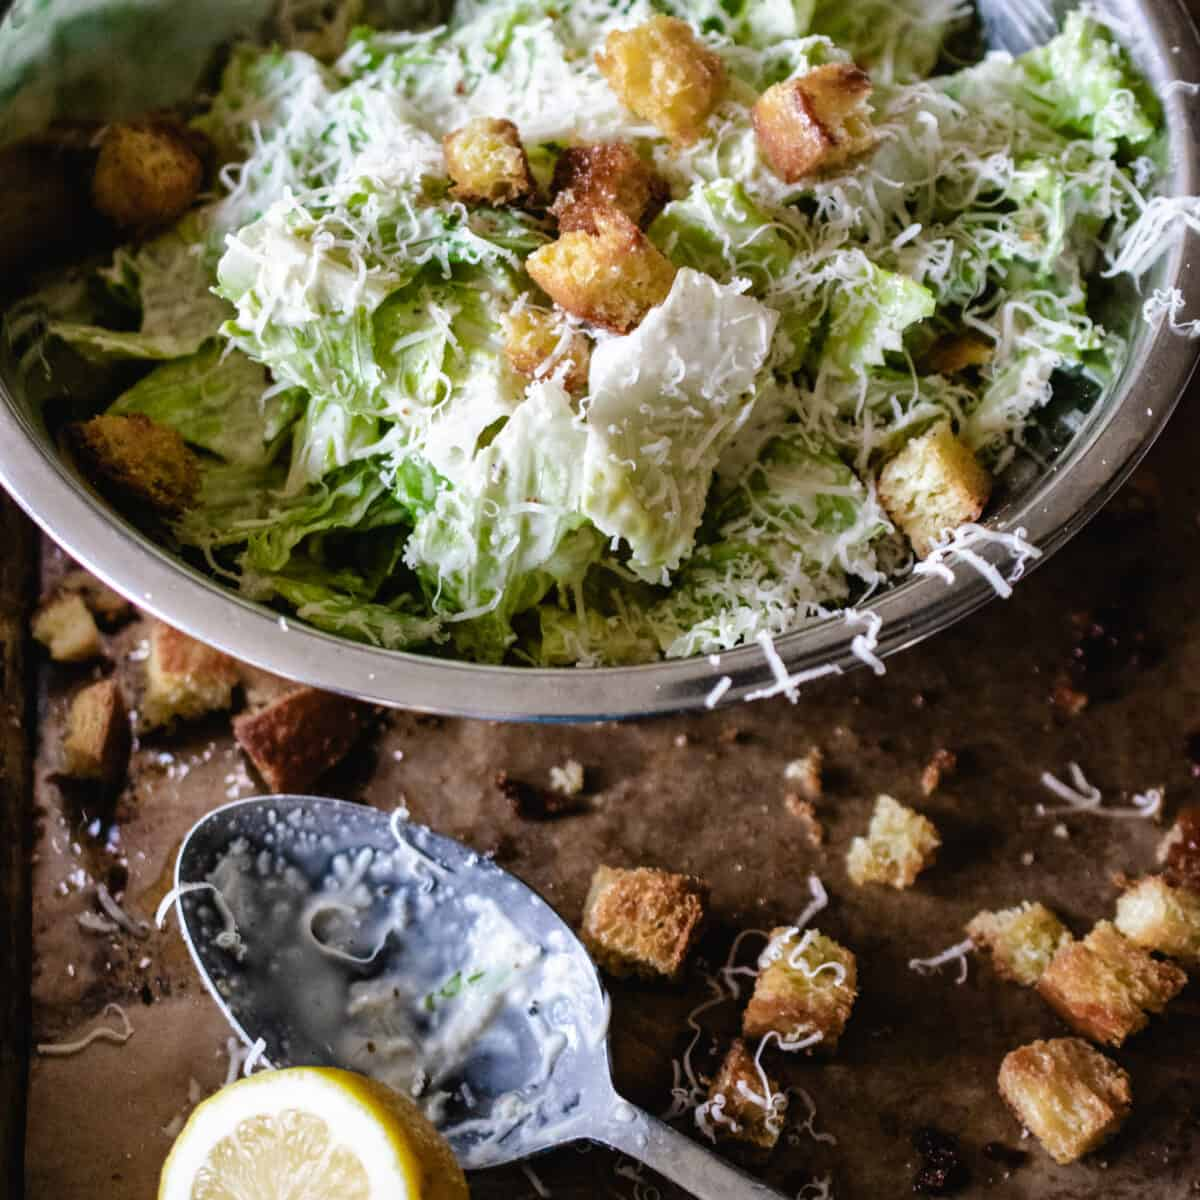 stainless steel bowl of tossed Caesar salad, with croutons, lemon wedge and spoon